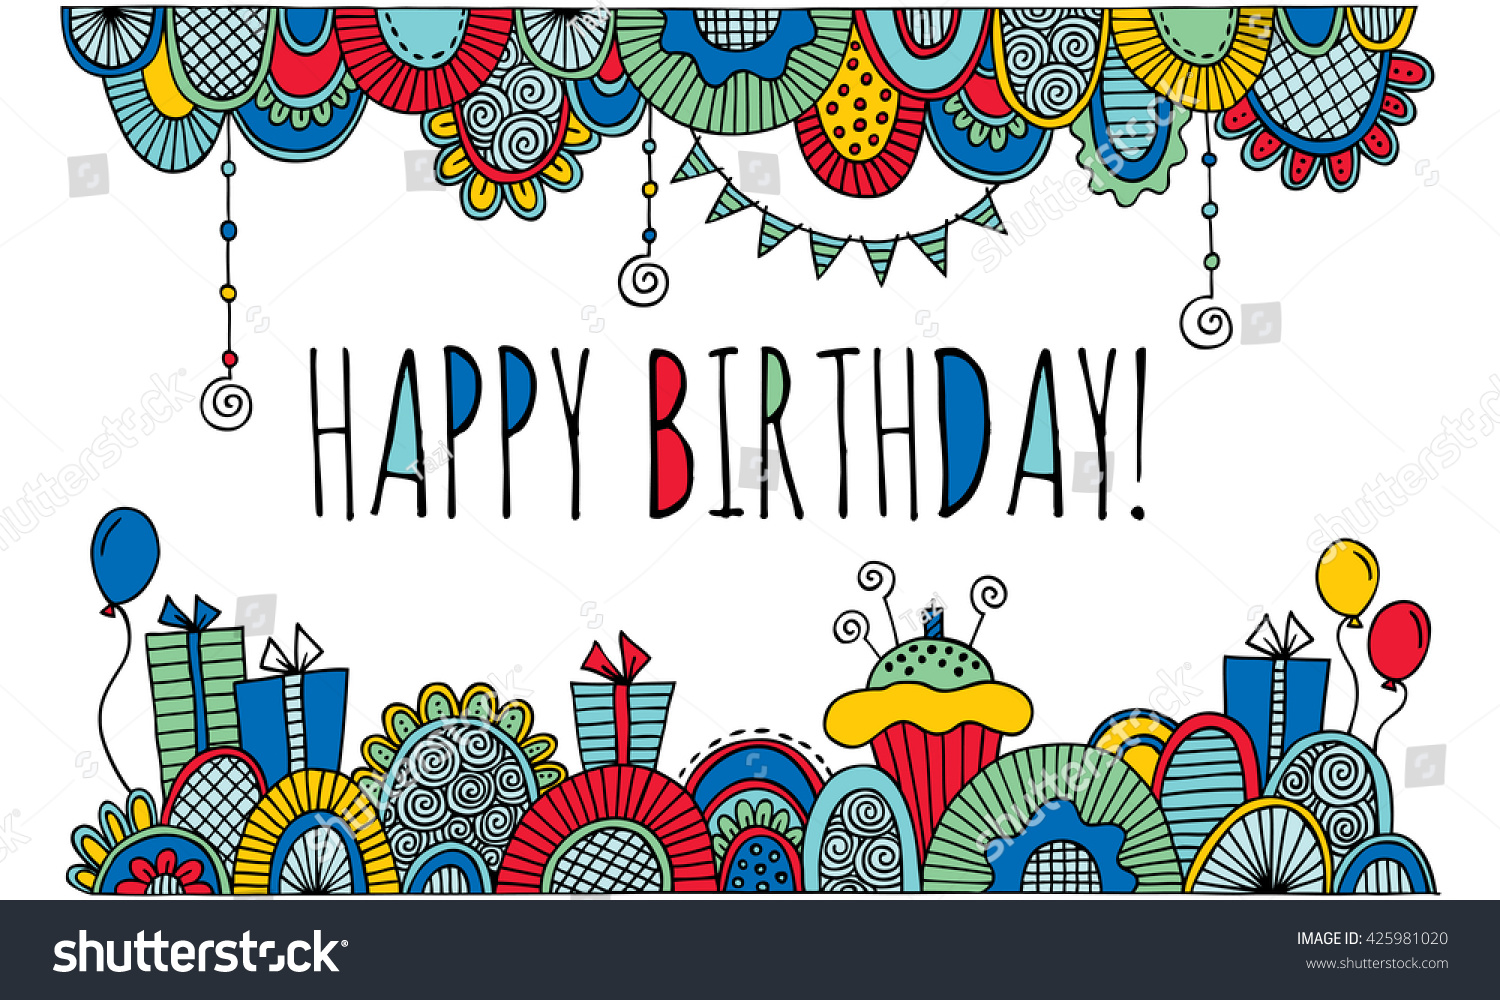 birthday artwork ; stock-photo-happy-birthday-with-border-bright-doodle-artwork-colorful-birthday-illustration-the-words-happy-425981020